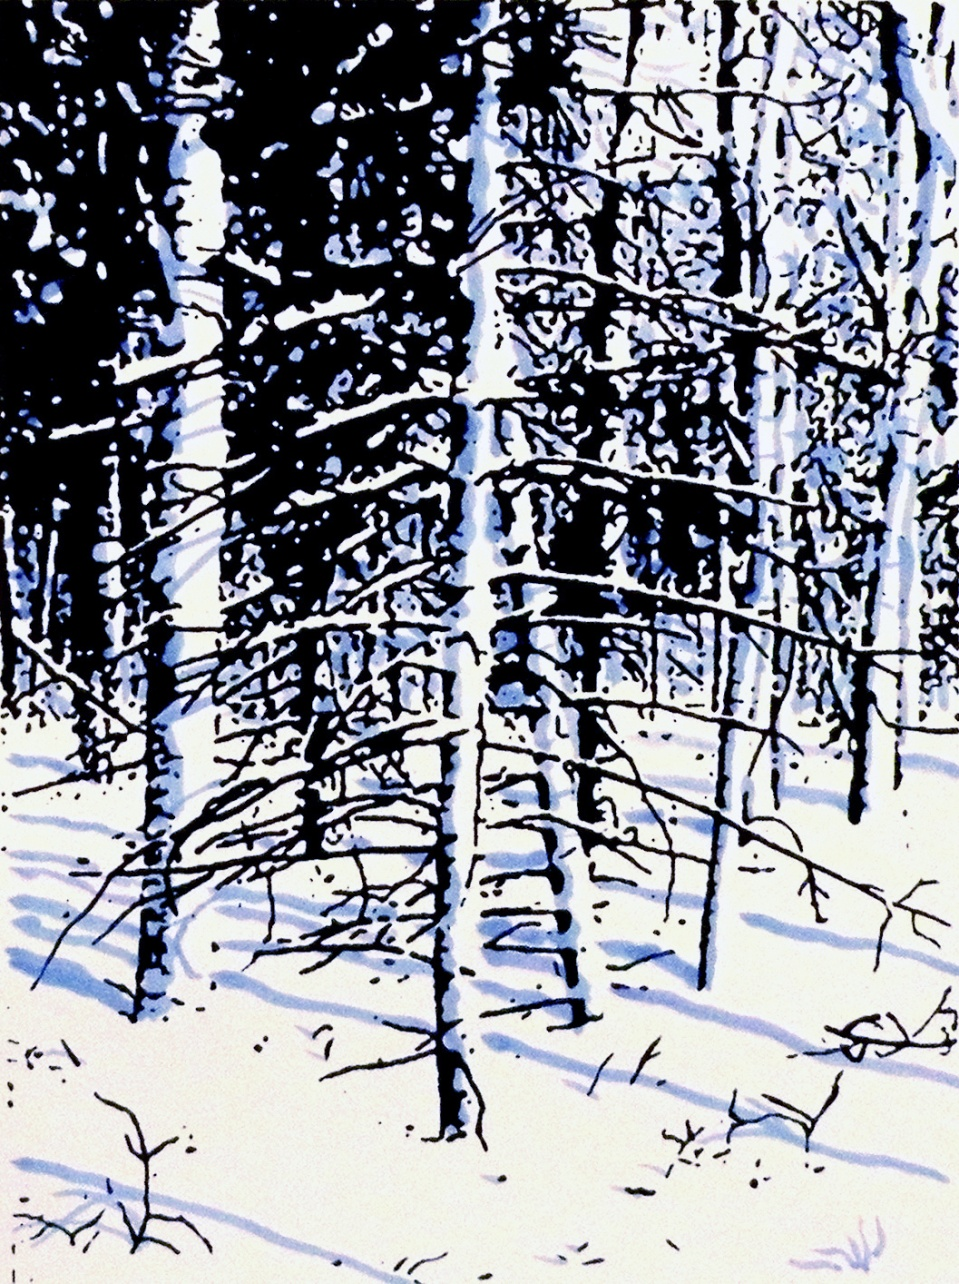 SNOW DAY, 2009, 1 color silkscreen with hand addition, 10 1/2 x 8, Edition of 25